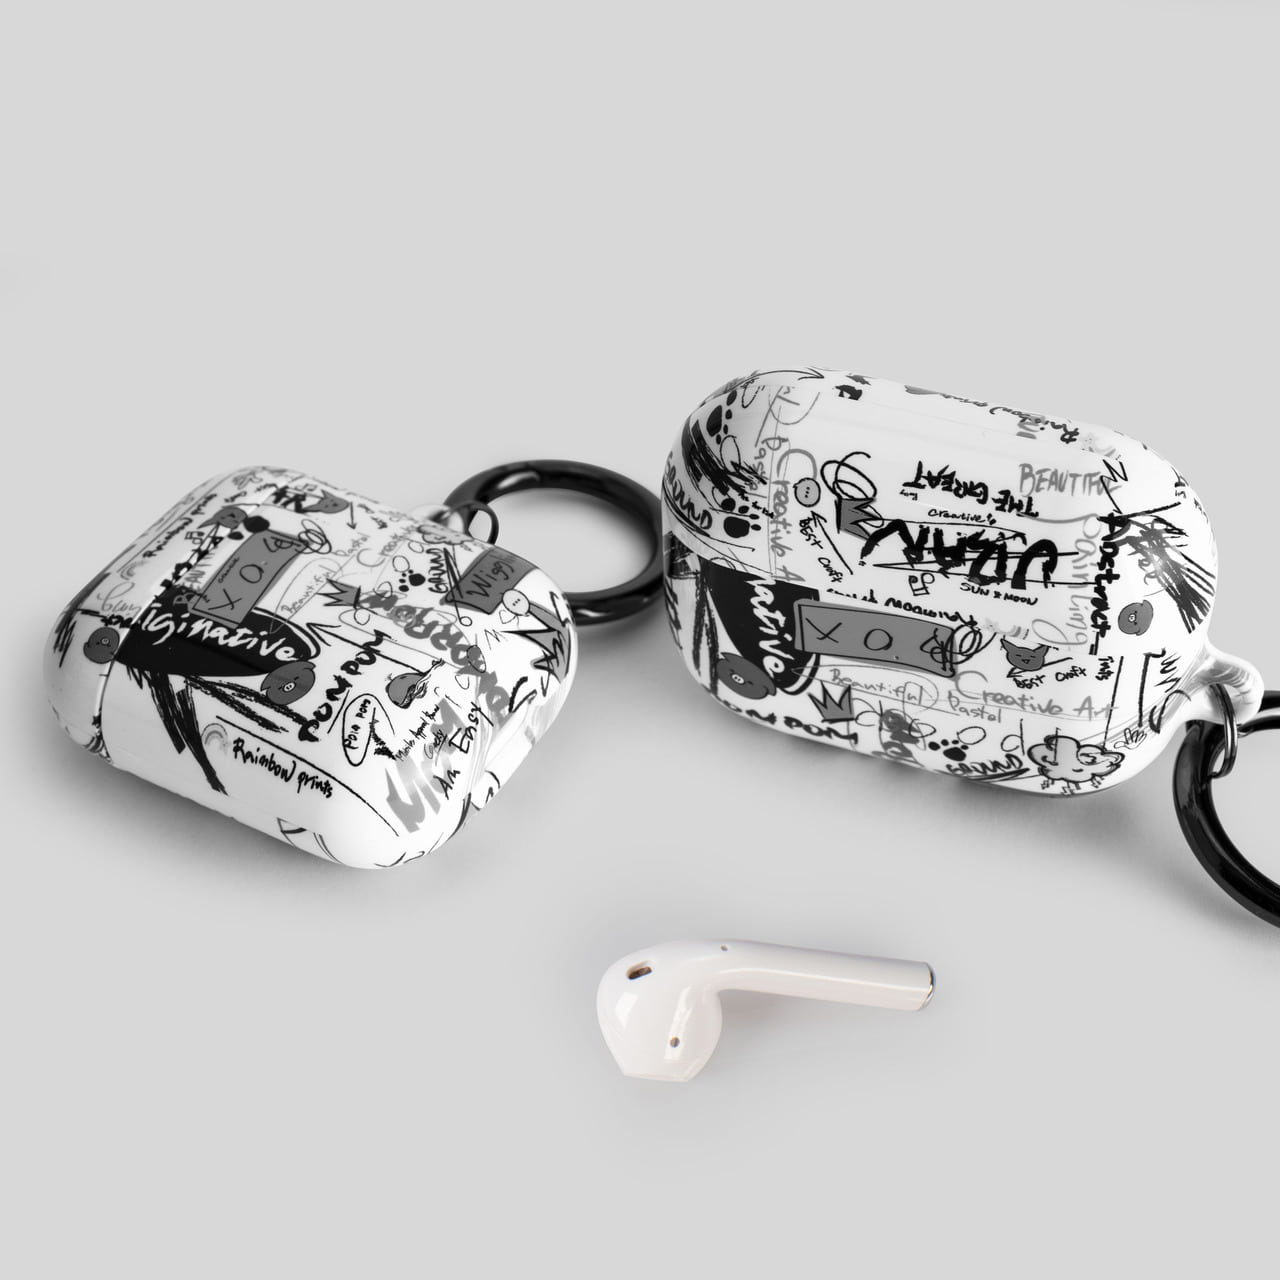 [Airpods cases] Purity No.07